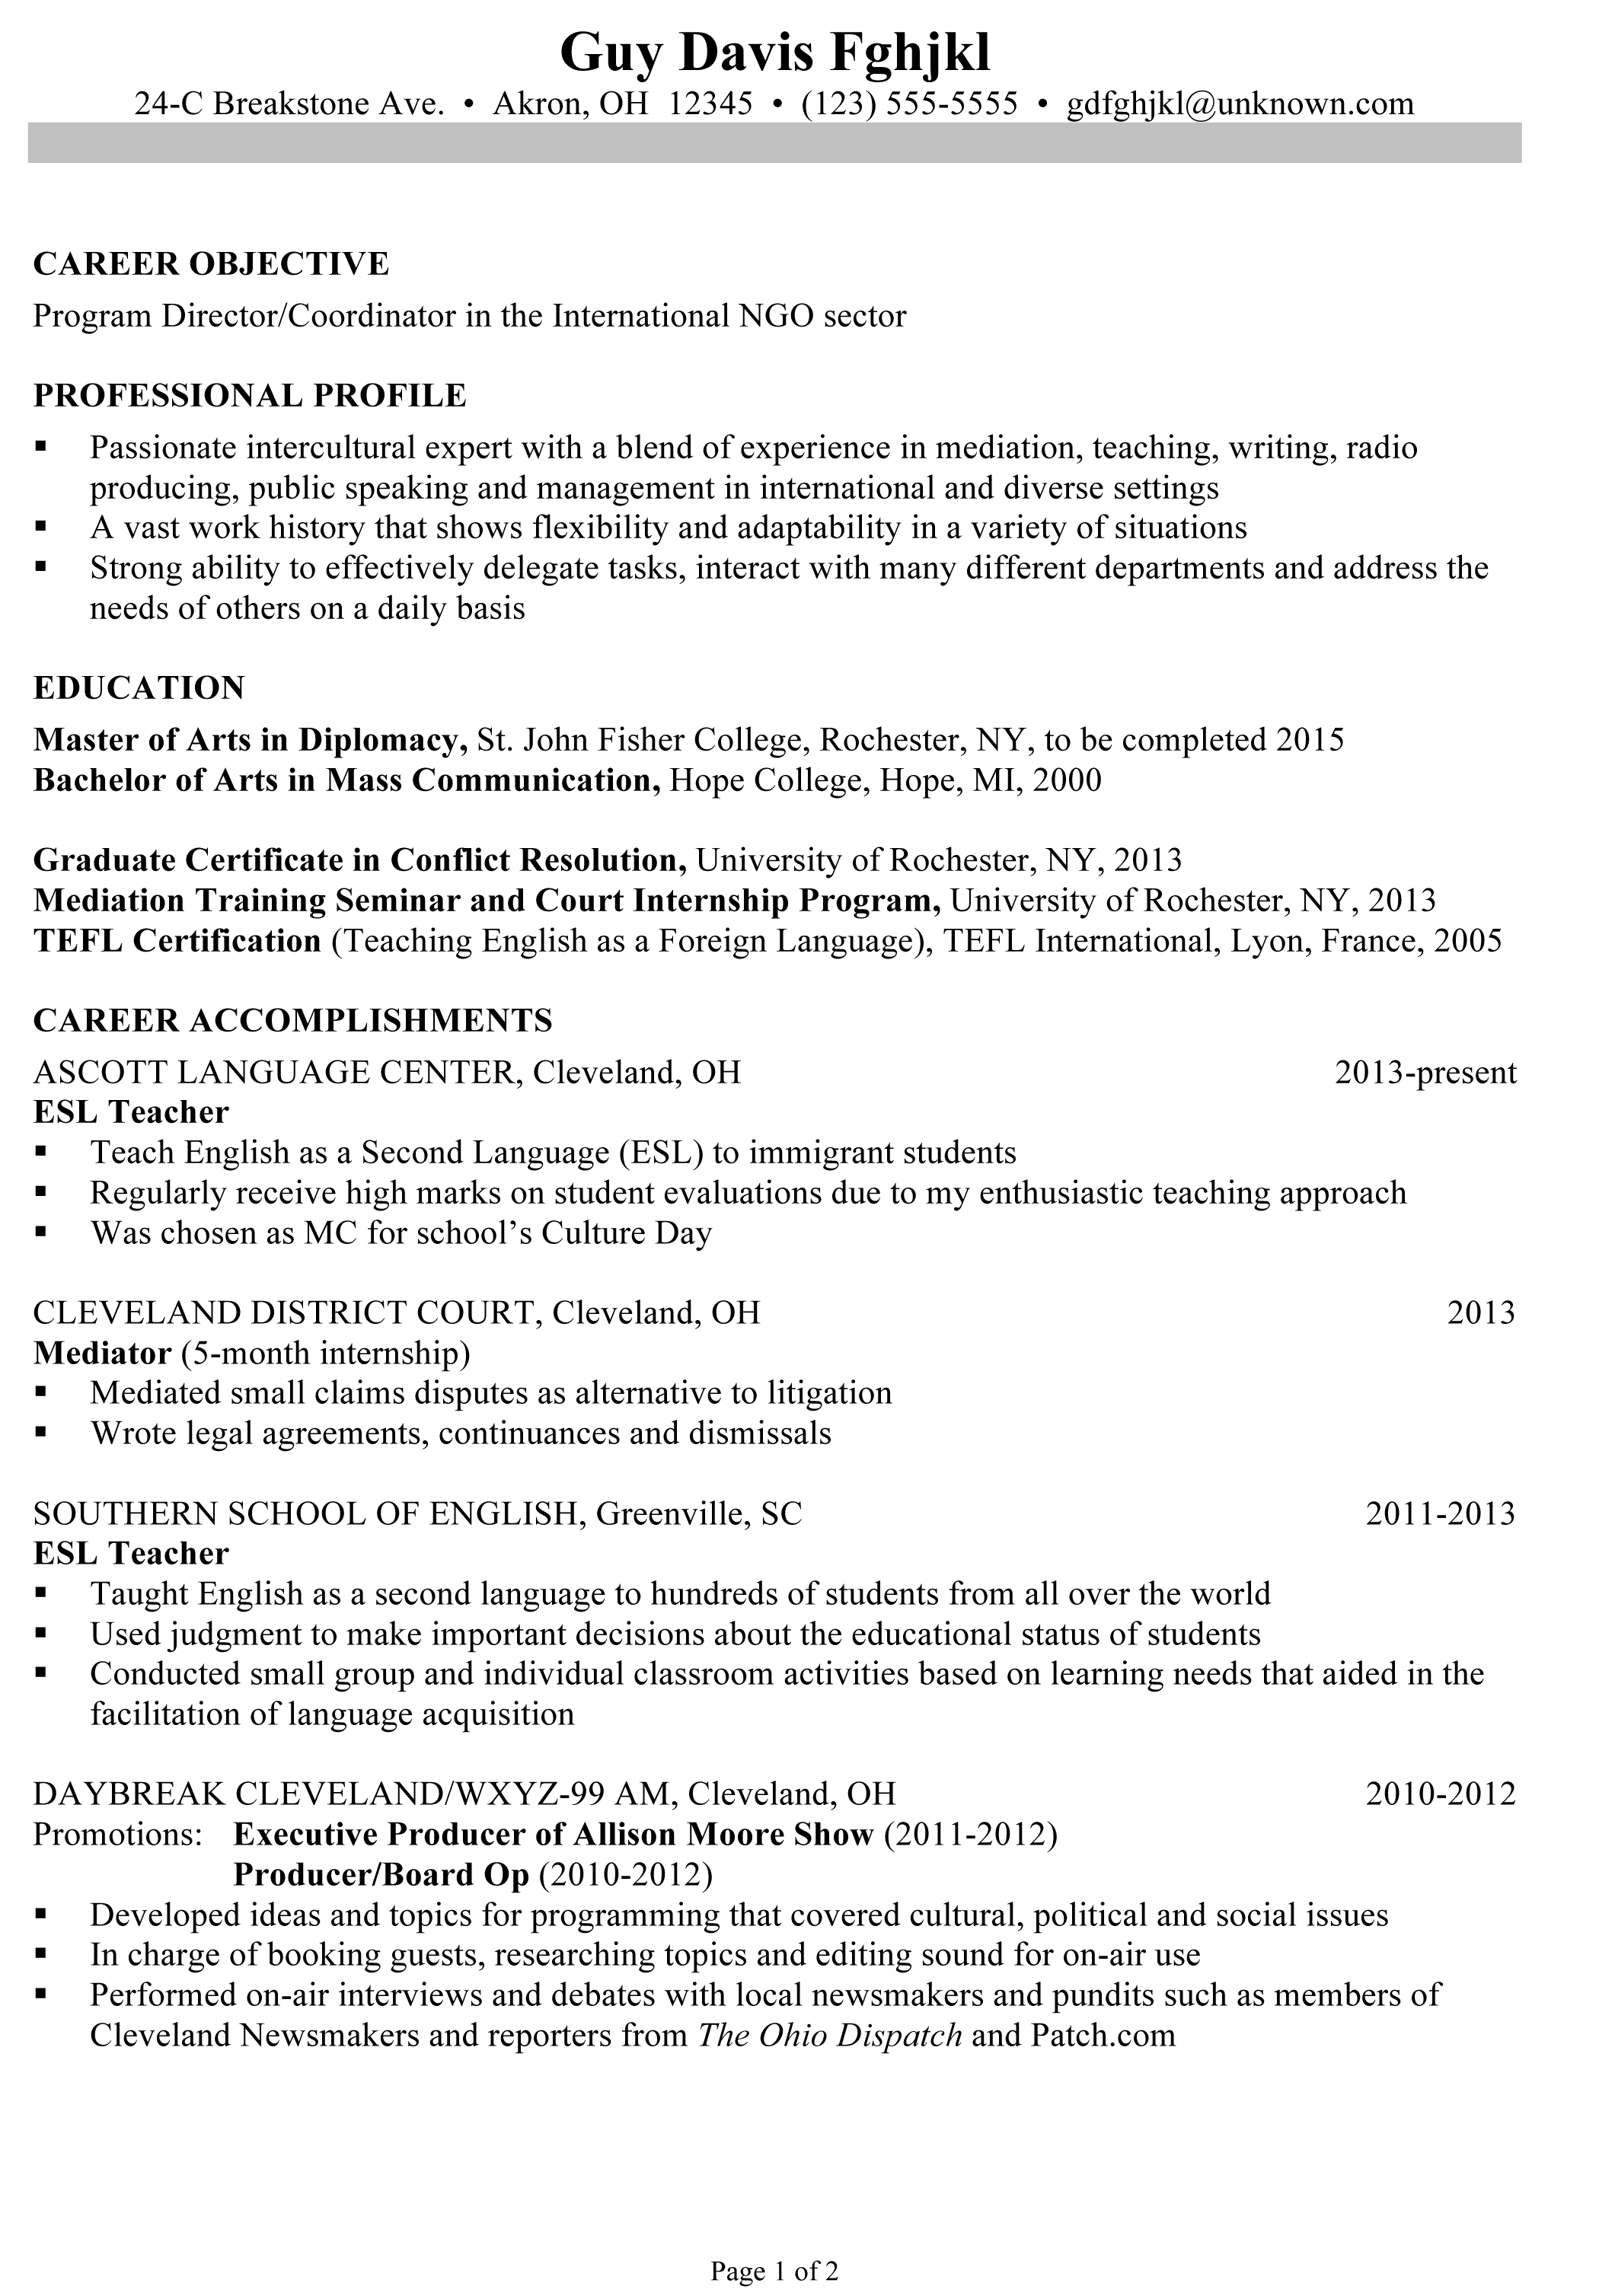 Chronological resume sample program director coordinator my style chronological resume sample program director coordinator spiritdancerdesigns Image collections